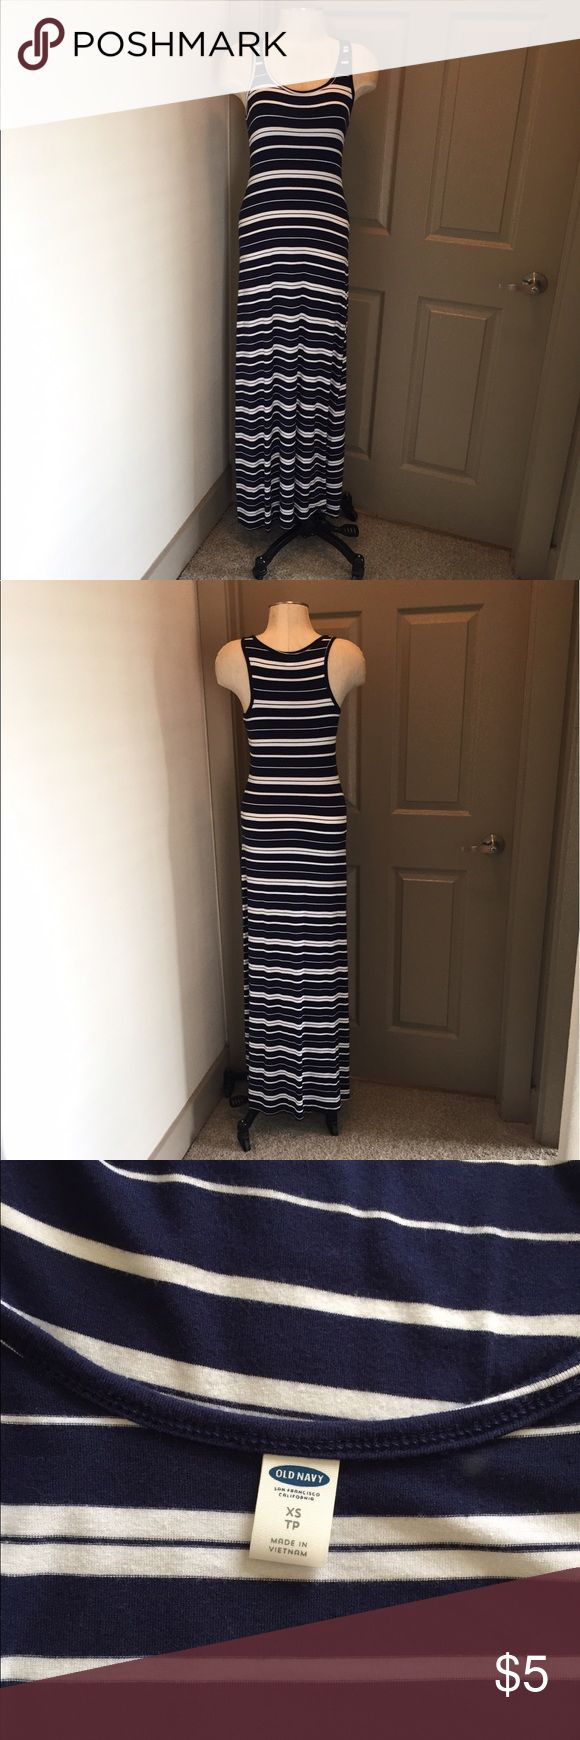 Old Navy maxi dress Old Navy maxi dress, good condition. Super soft and well loved. Old Navy Dresses Maxi